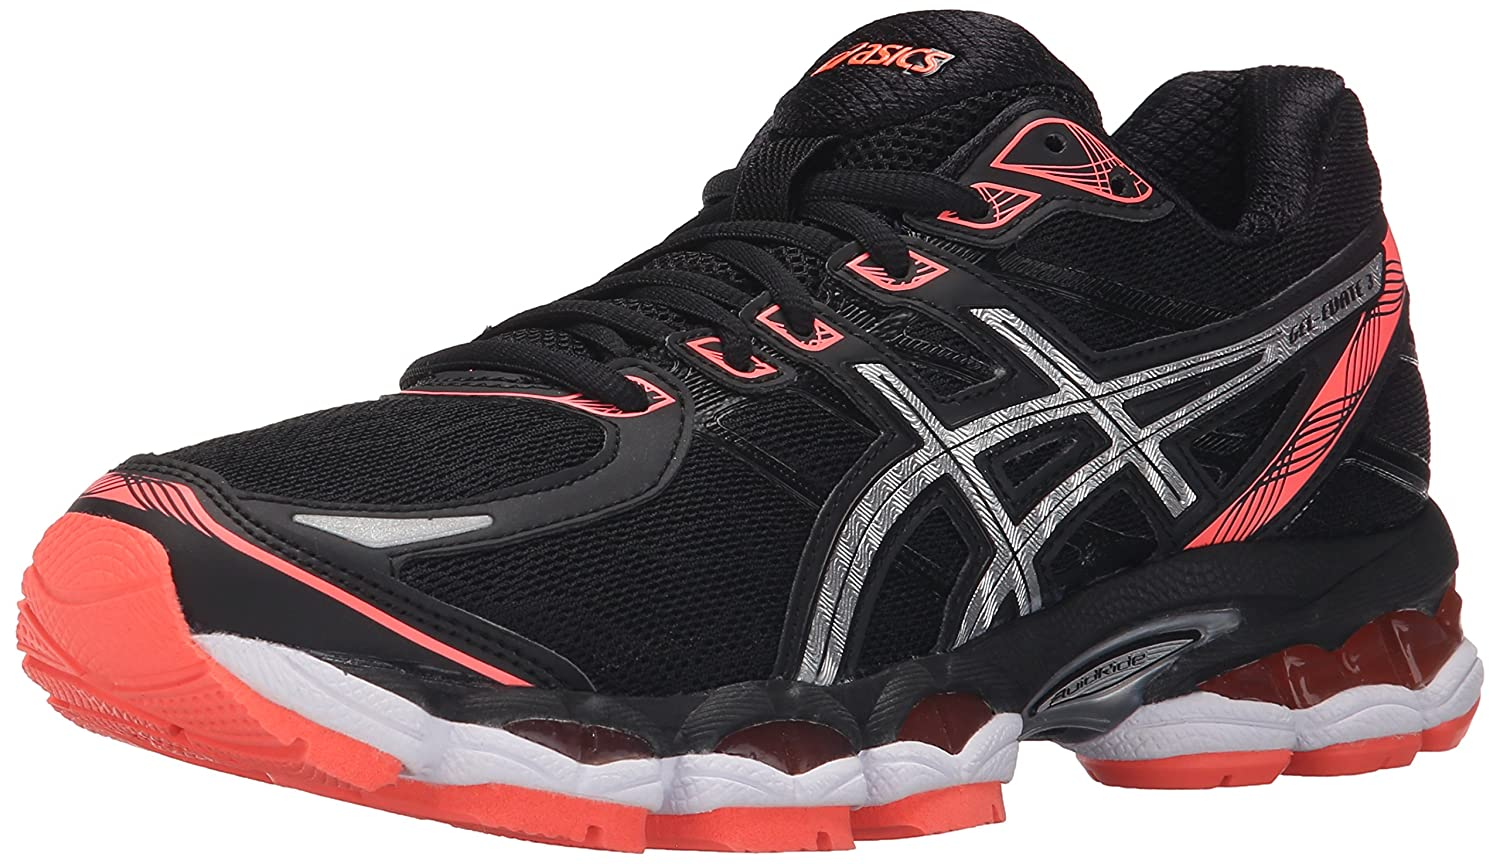 5a35d8c7 ASICS Women's Gel-Evate 3 Running Shoe